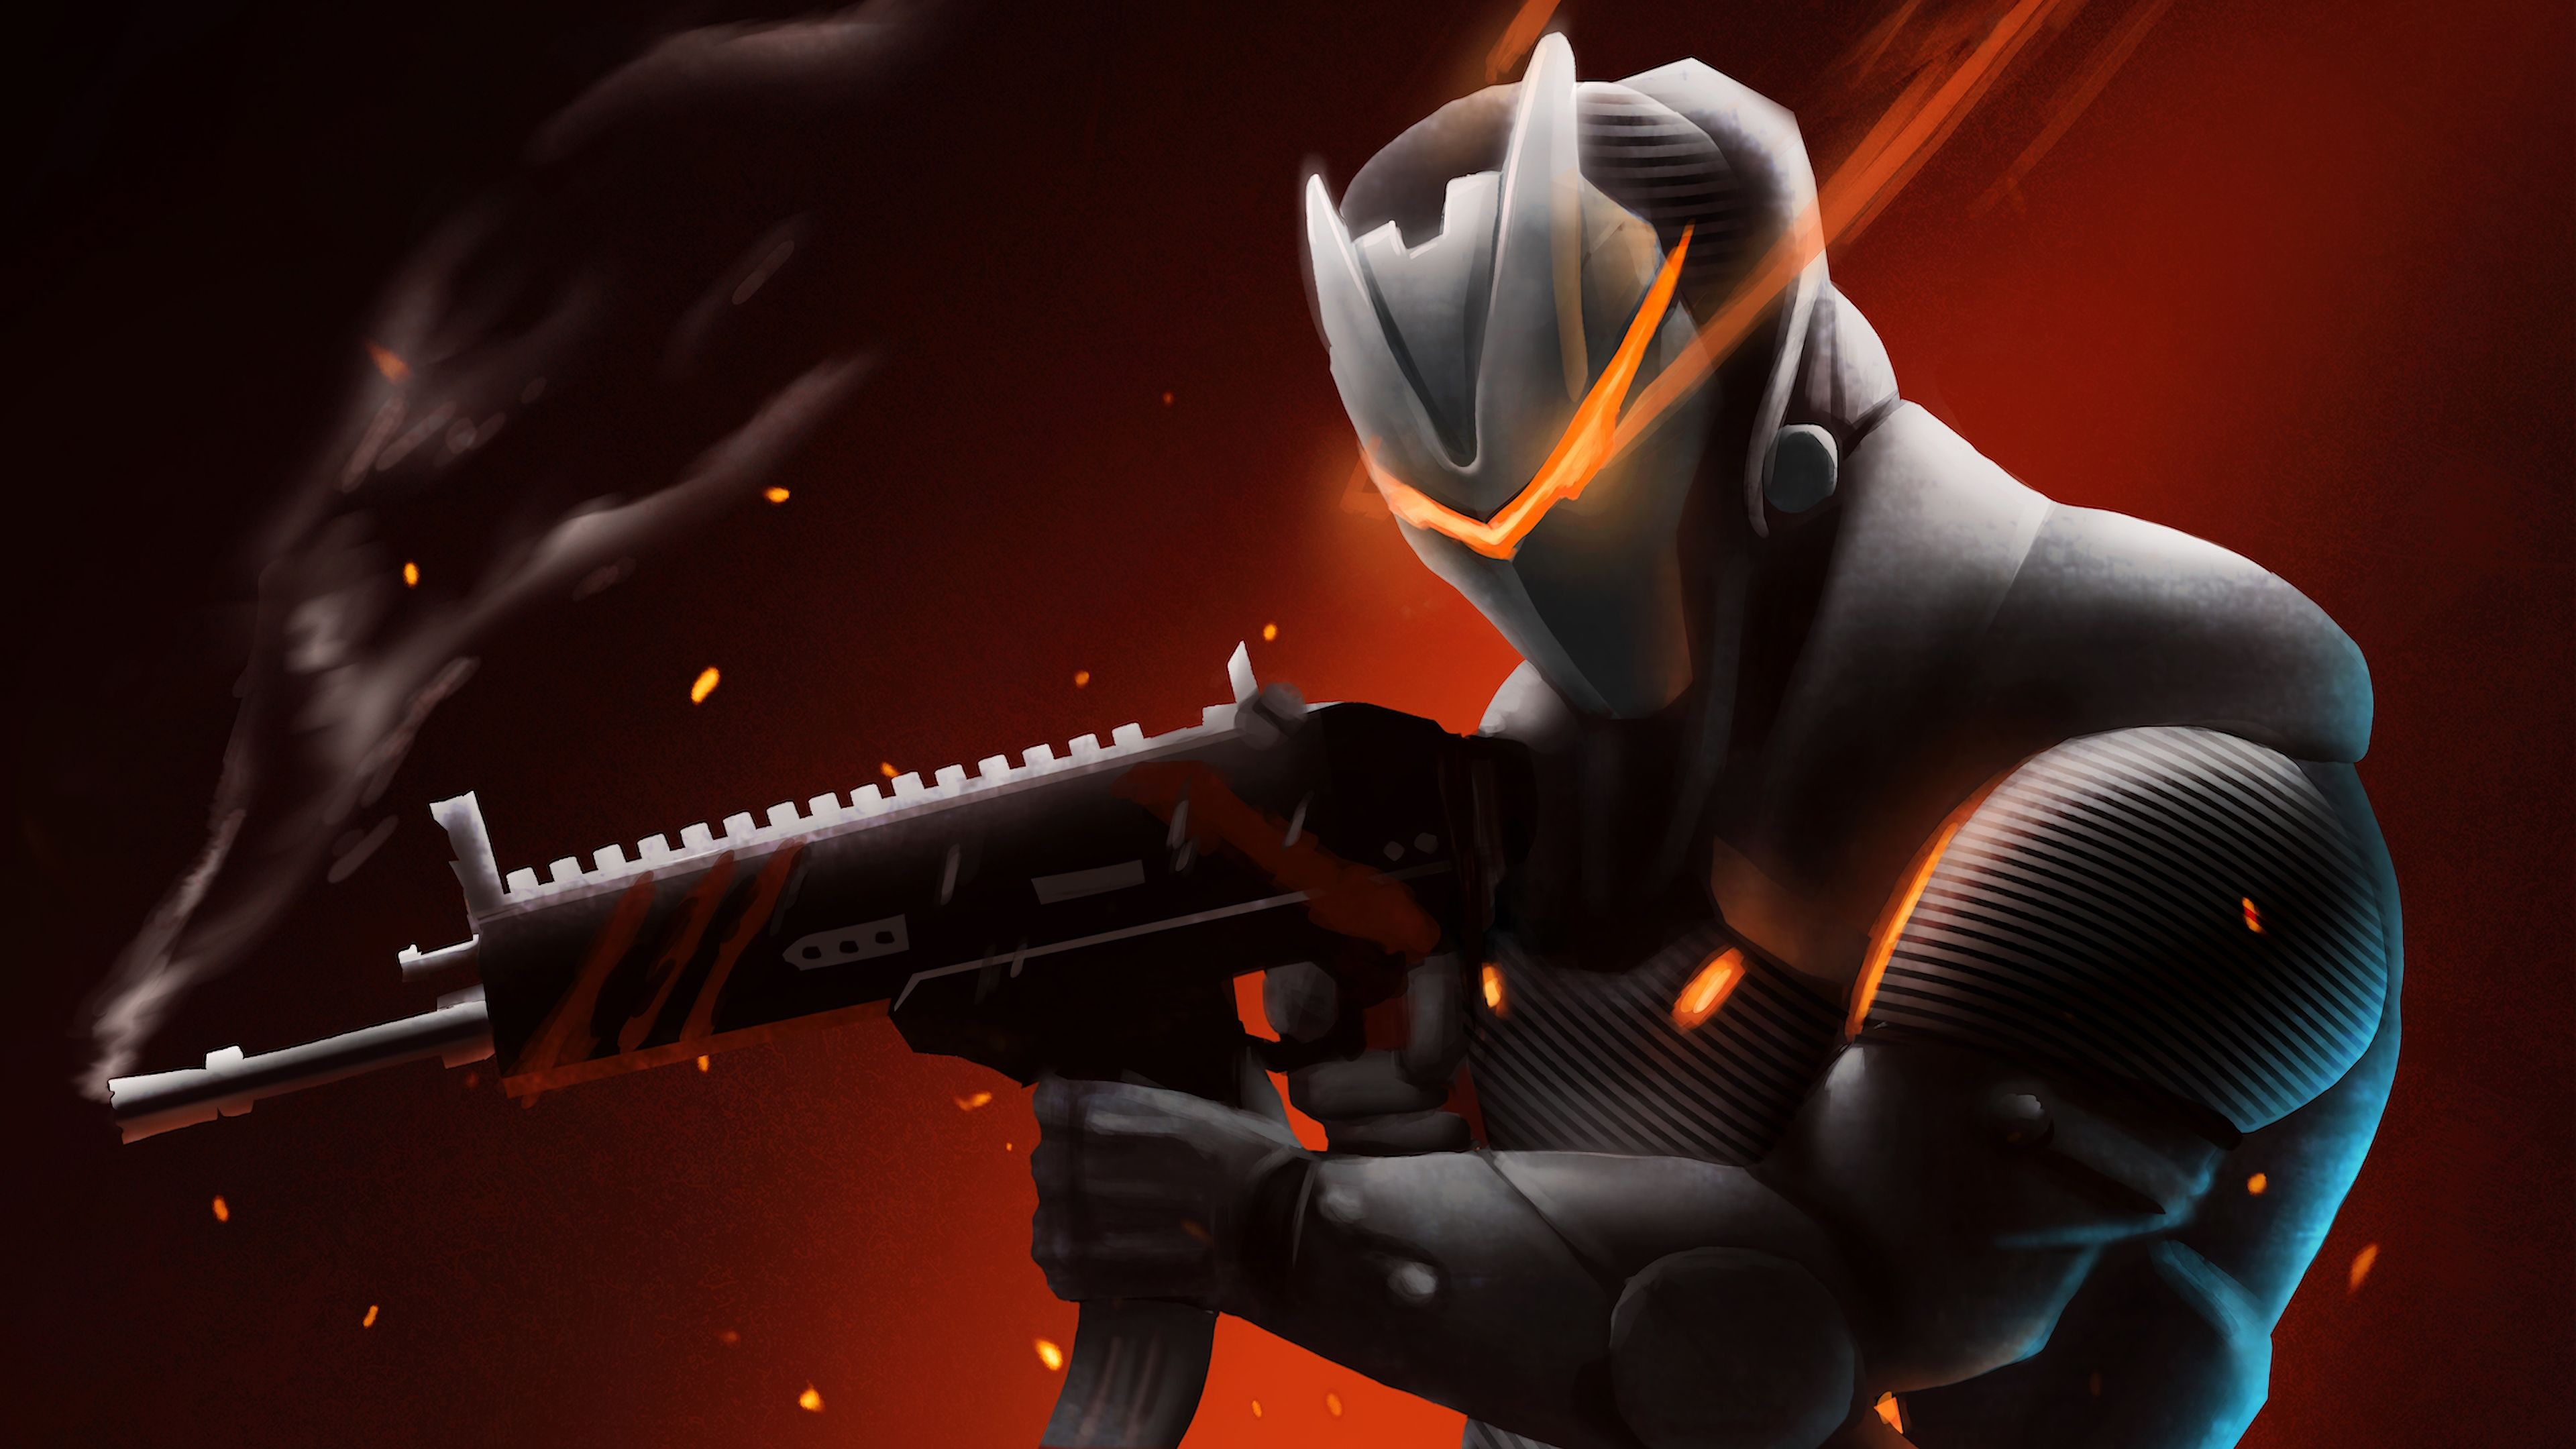 Wallpapers 4k Omega With Rifle Fortnite Battle Royale 2018 games